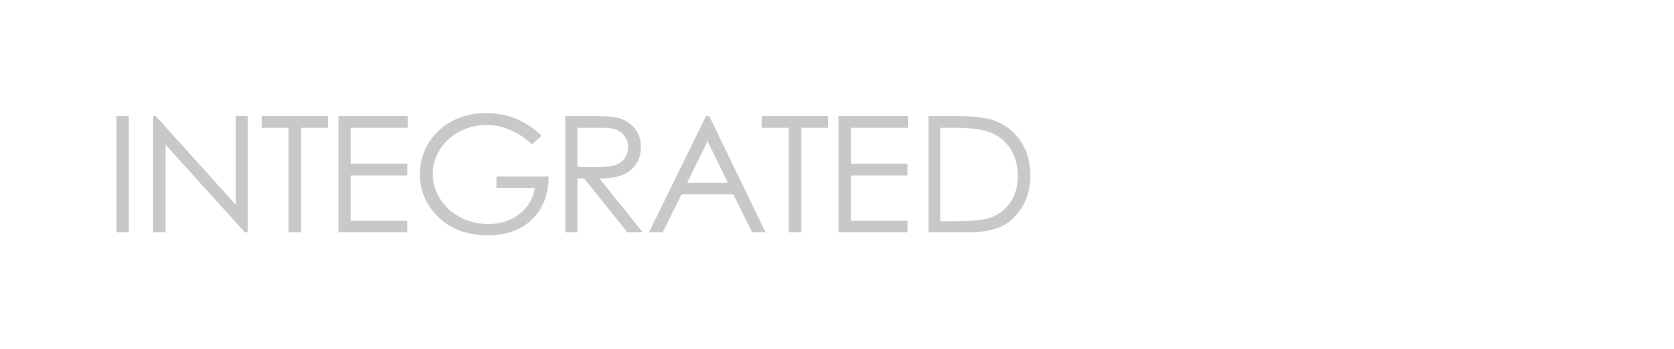 Integrated Image Logo